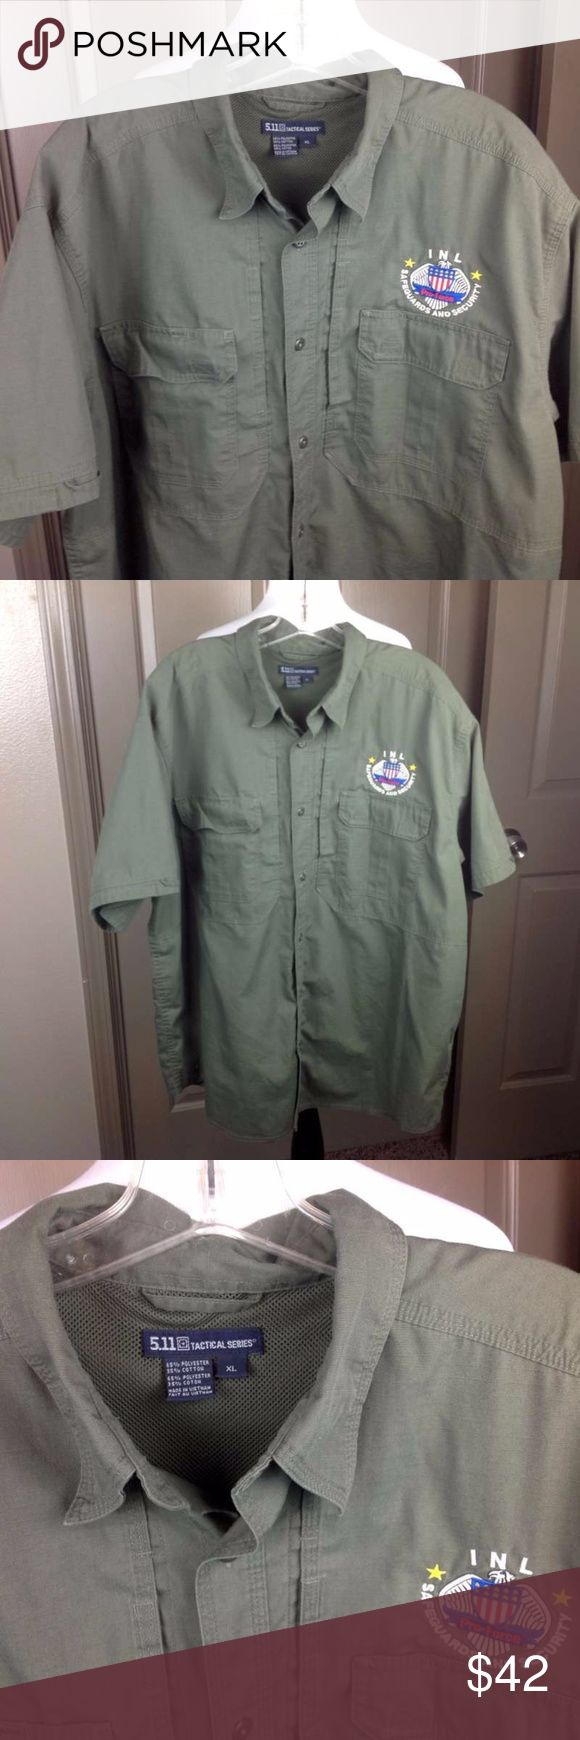 511 Tactical Series Shirt XL Vented Pro Force Patc Great Condition; 511 Tactical Series Shirt XL Vented Button Down Pockets Army Green  Pro Force INL Safeguards and Security Embroidered Patch; Cotton Blend; 32 inch length 27 inch across chest 511 Tactical Shirts Casual Button Down Shirts